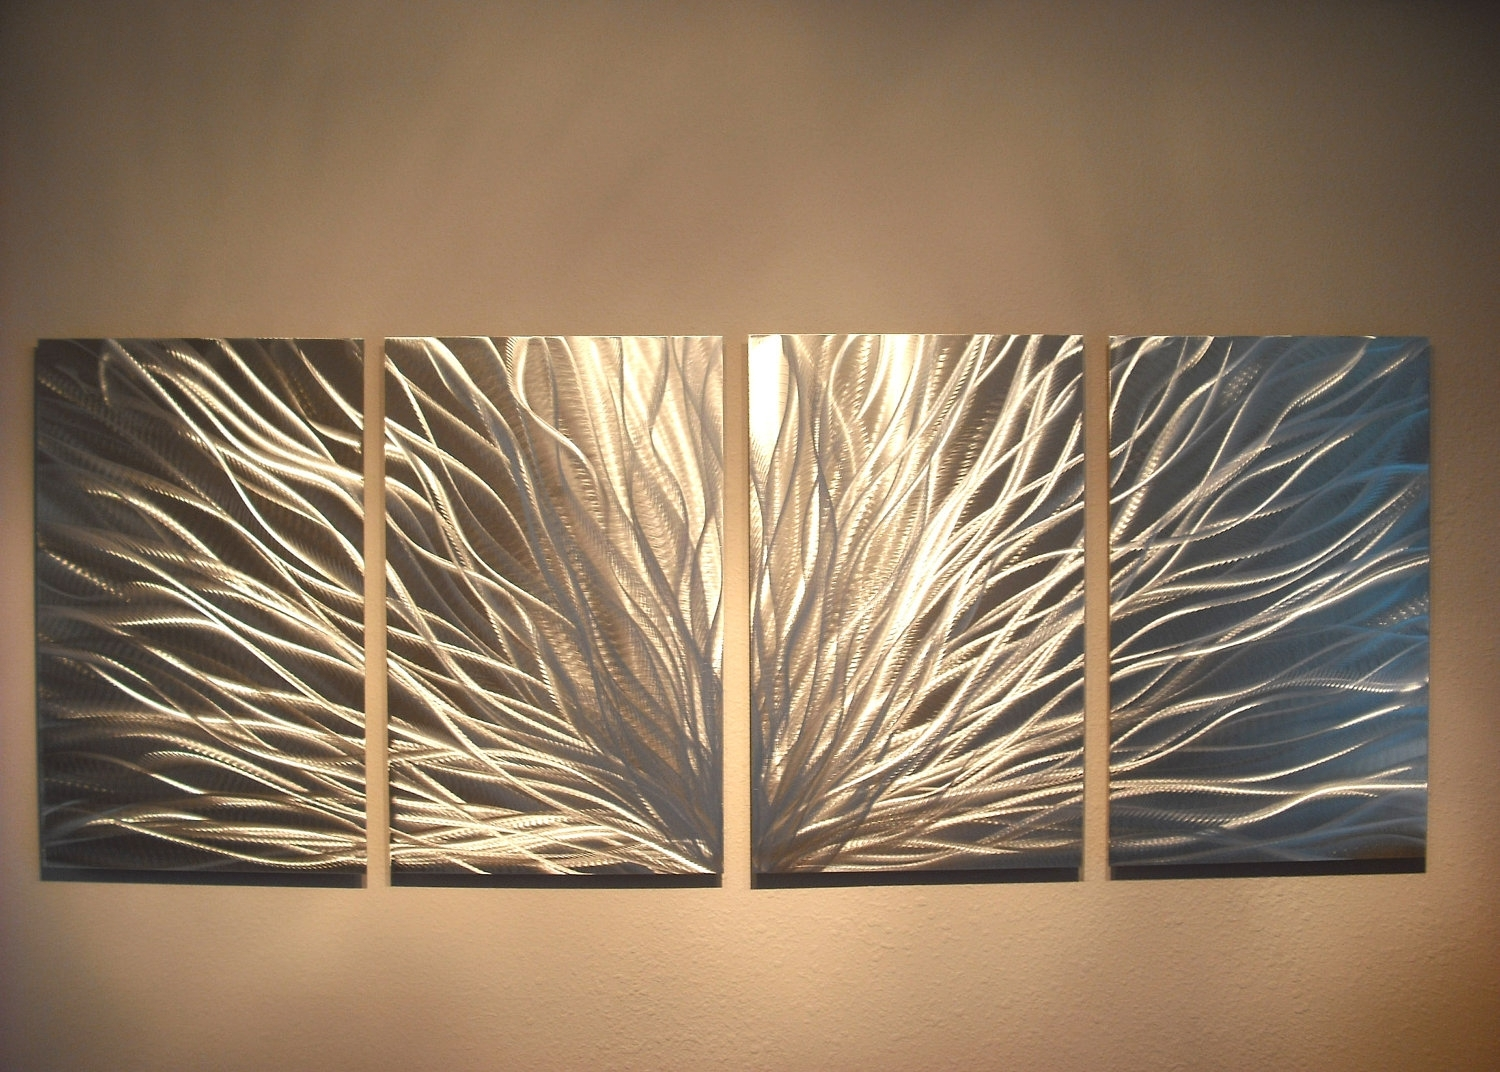 Radiance – Abstract Metal Wall Art Contemporary Modern Decor With Recent Wall Art Metal (Gallery 2 of 20)